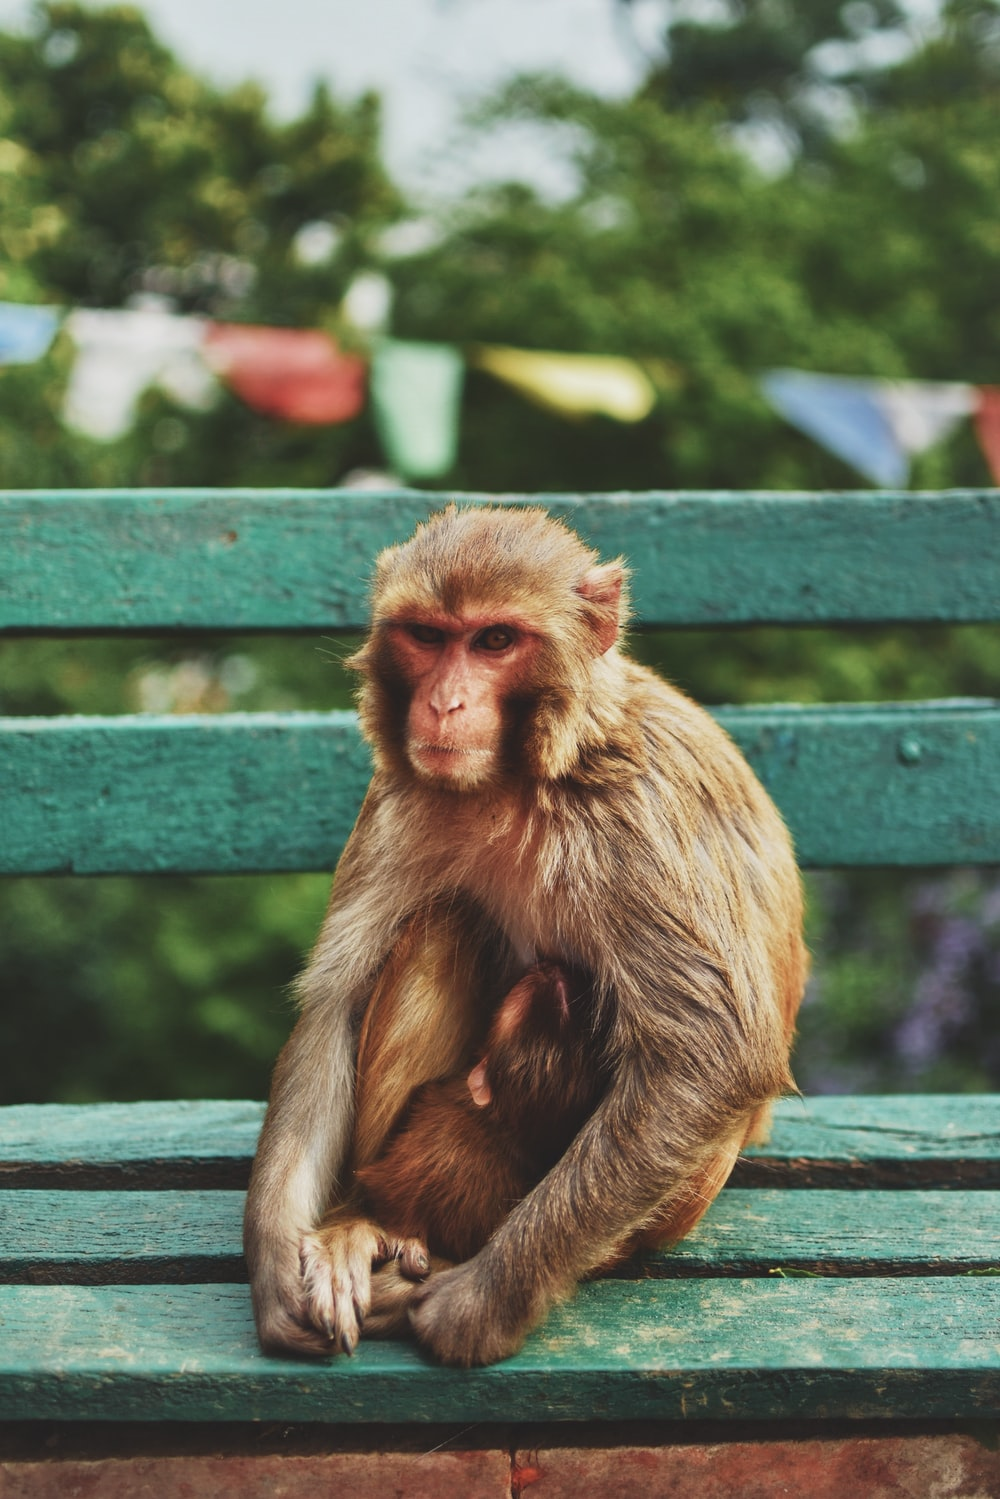 close-up photography of brown monkey sitting on green bench during daytie